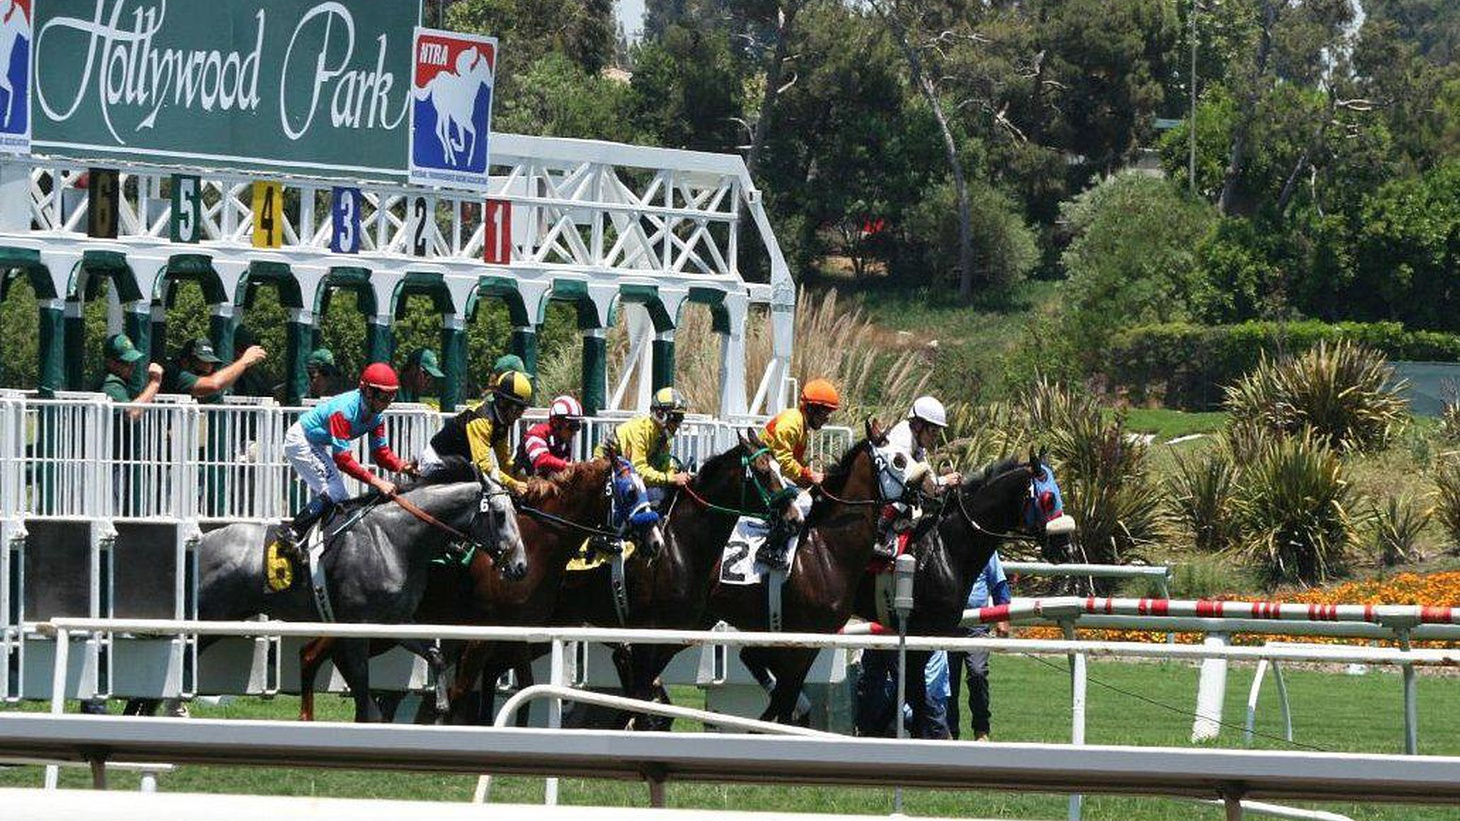 After 75 years, the last race will be run at Hollywood Park this Sunday. Once the playground of Hollywood stars, it's slated to become a mixed use development.